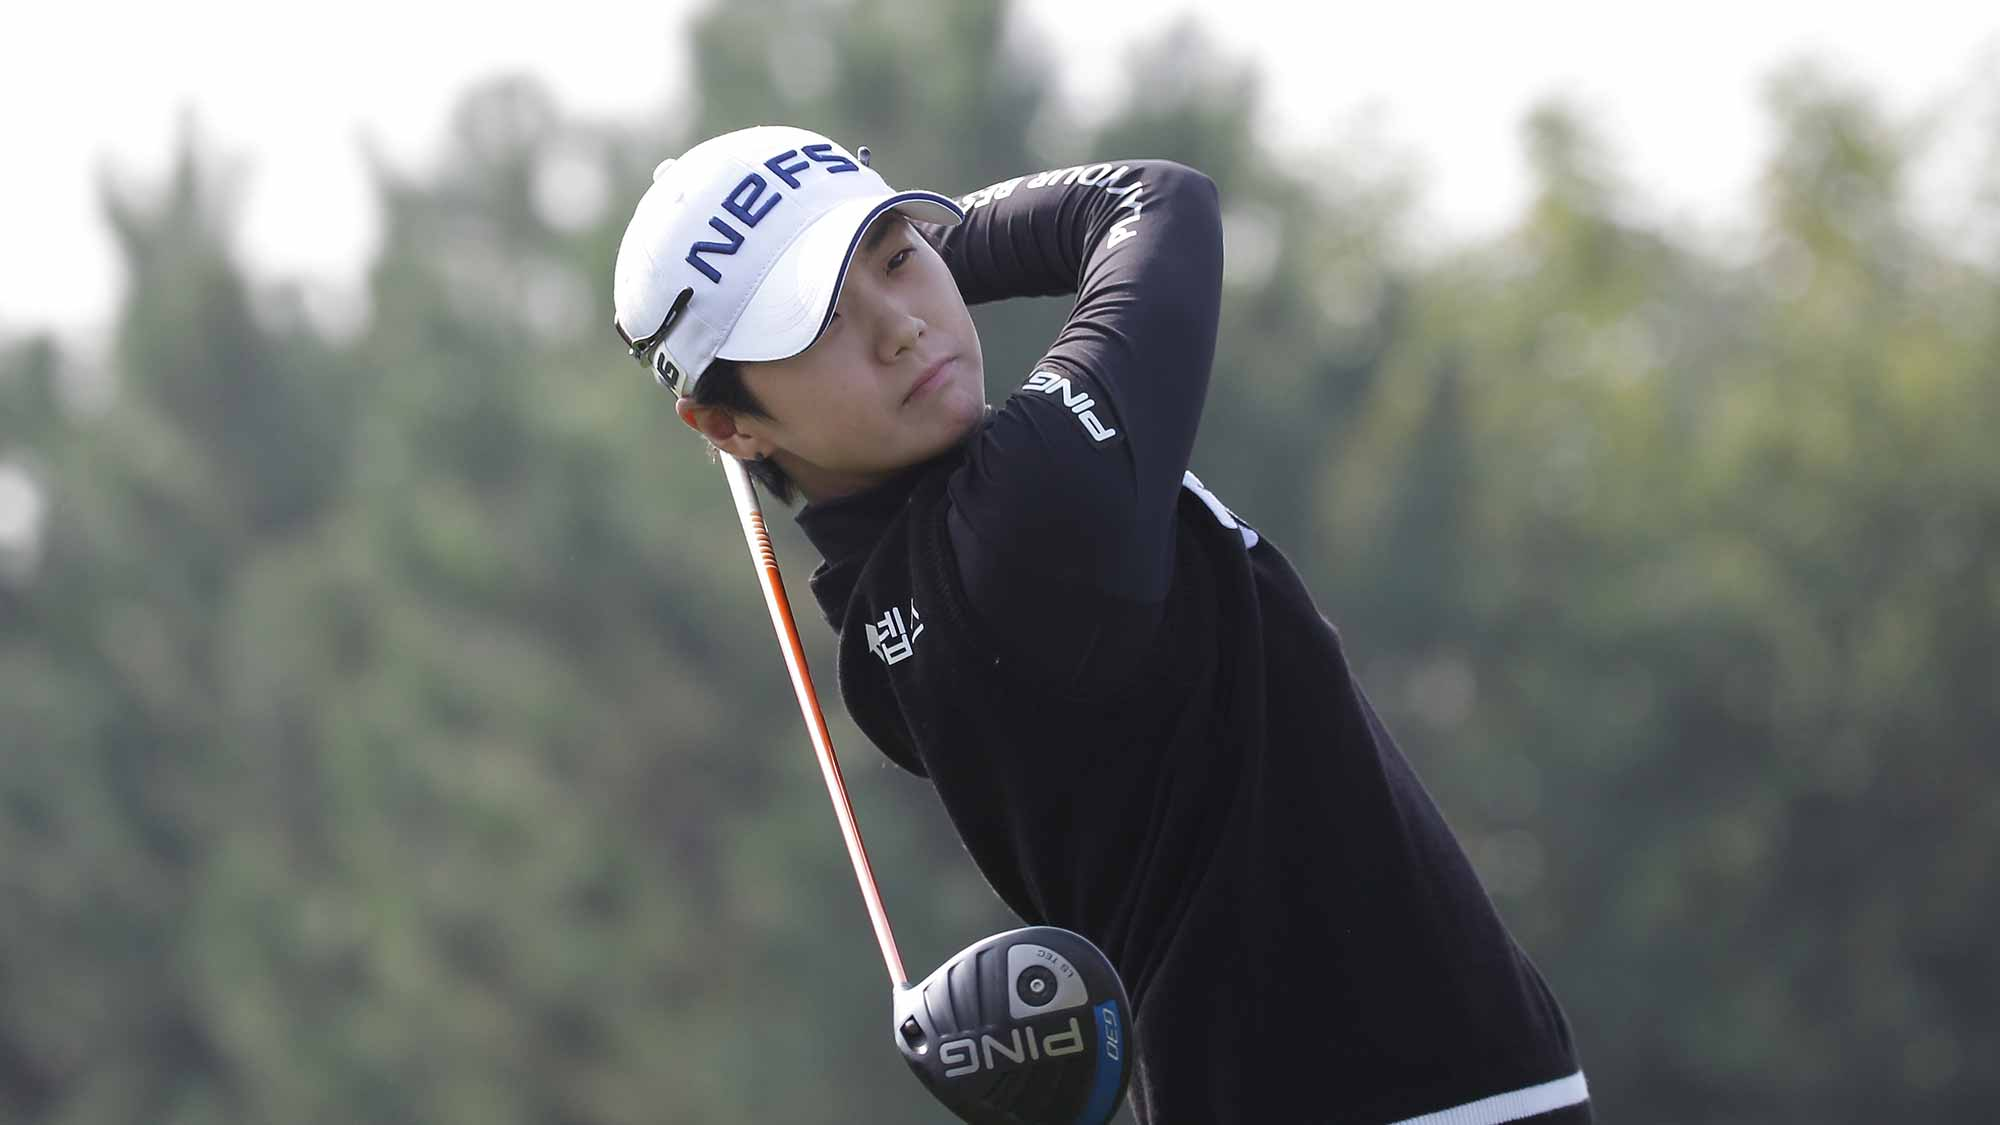 Sung Hyun Park of South Korea plays a tee shot on the 2nd green during round four of the LPGA KEB Hana Bank